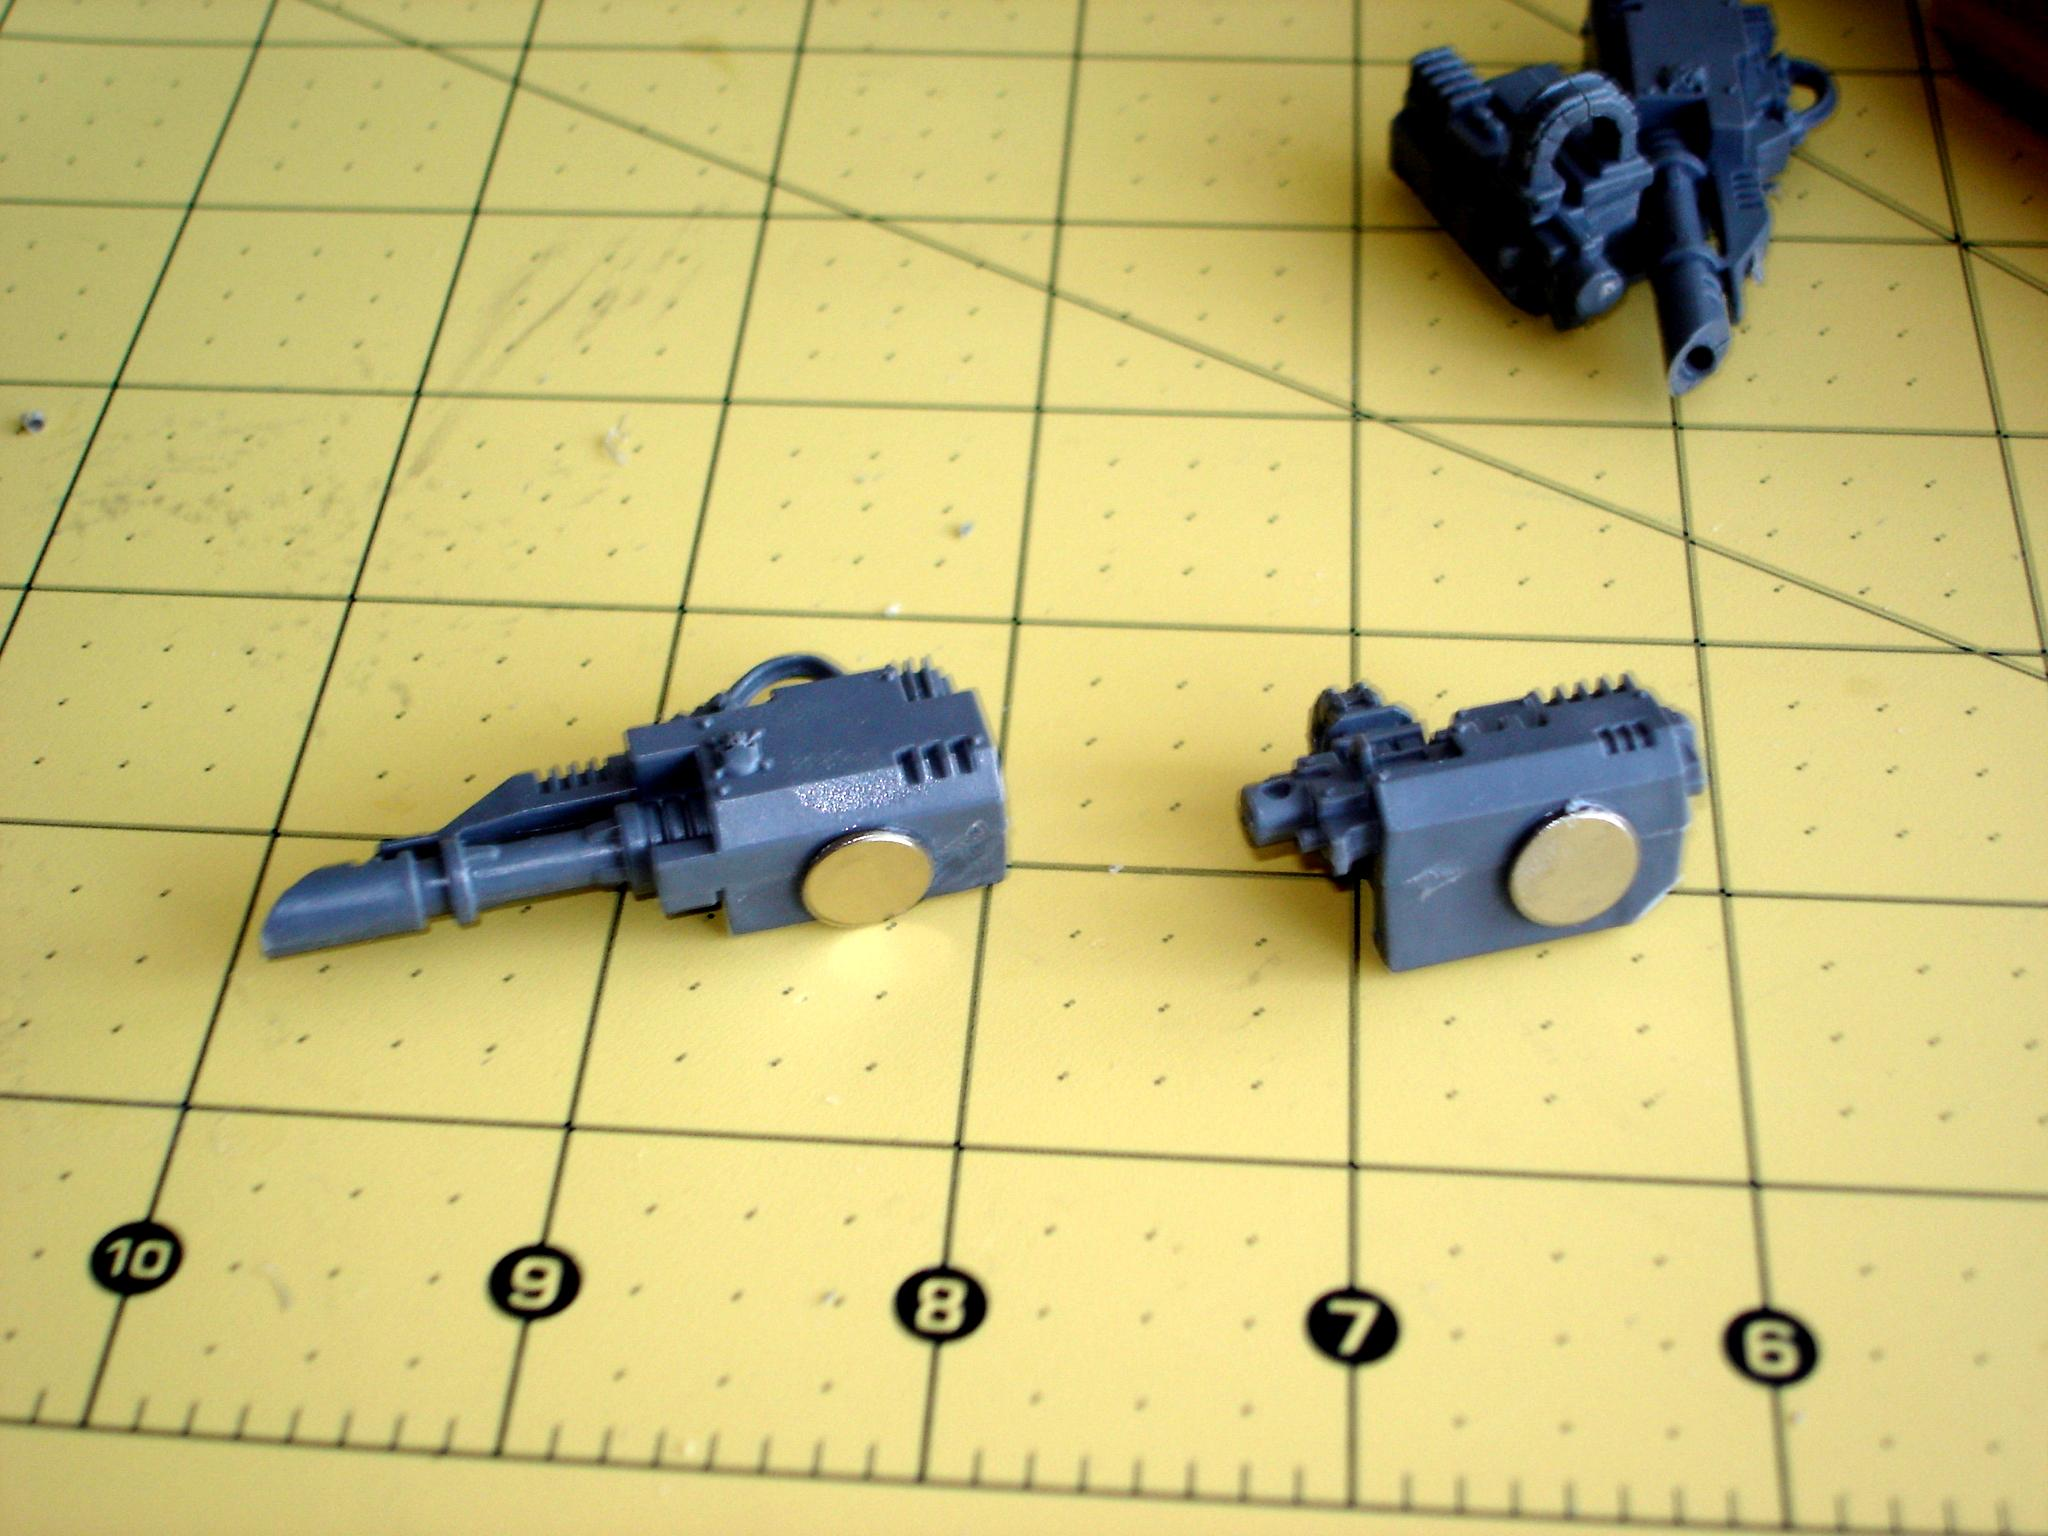 Magnetised weapons